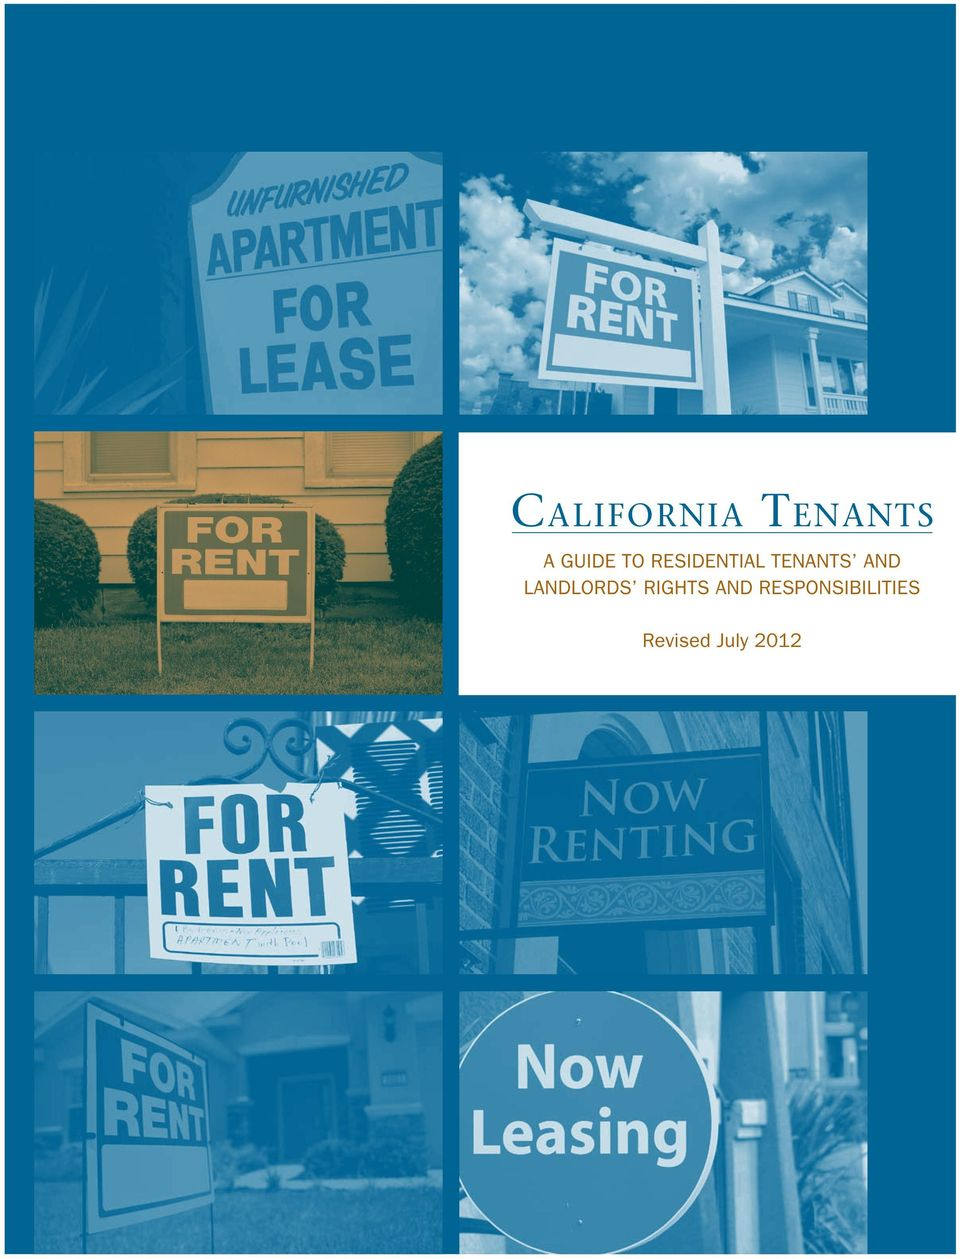 California tenants: a guide to residential tenants and landlords.